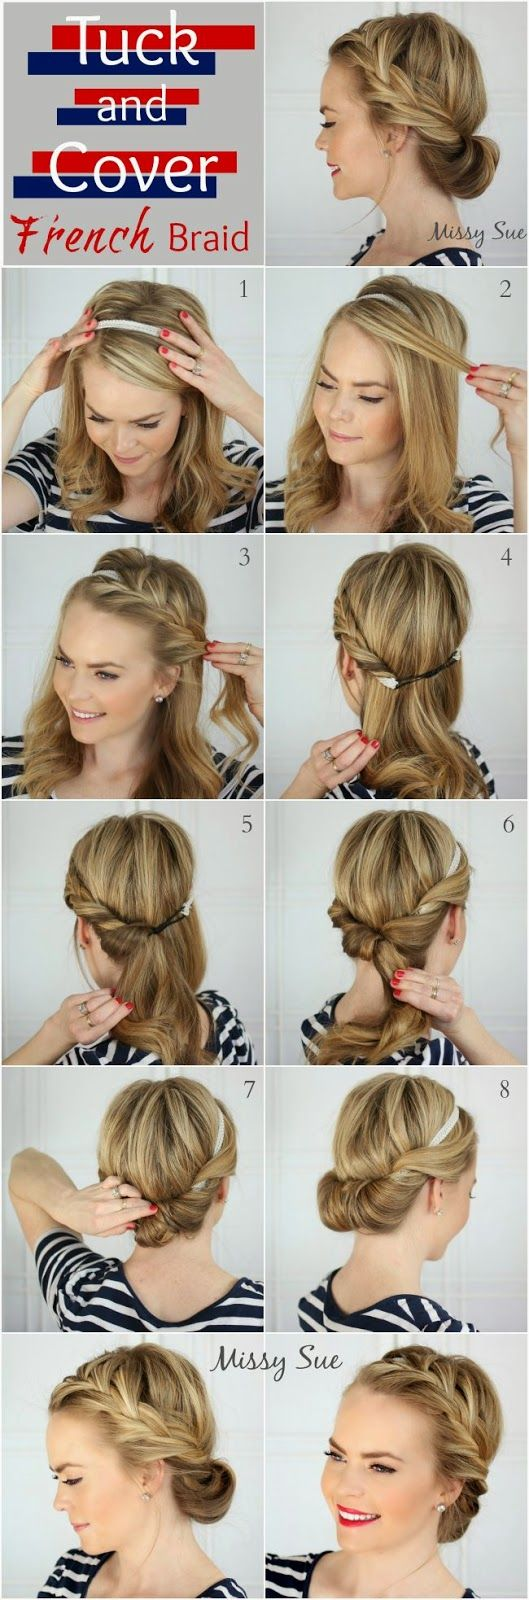 542 best Cocolino images on Pinterest   First communion  Diy baby     10 Fun And Fab DIY Hairstyles For Long Hair